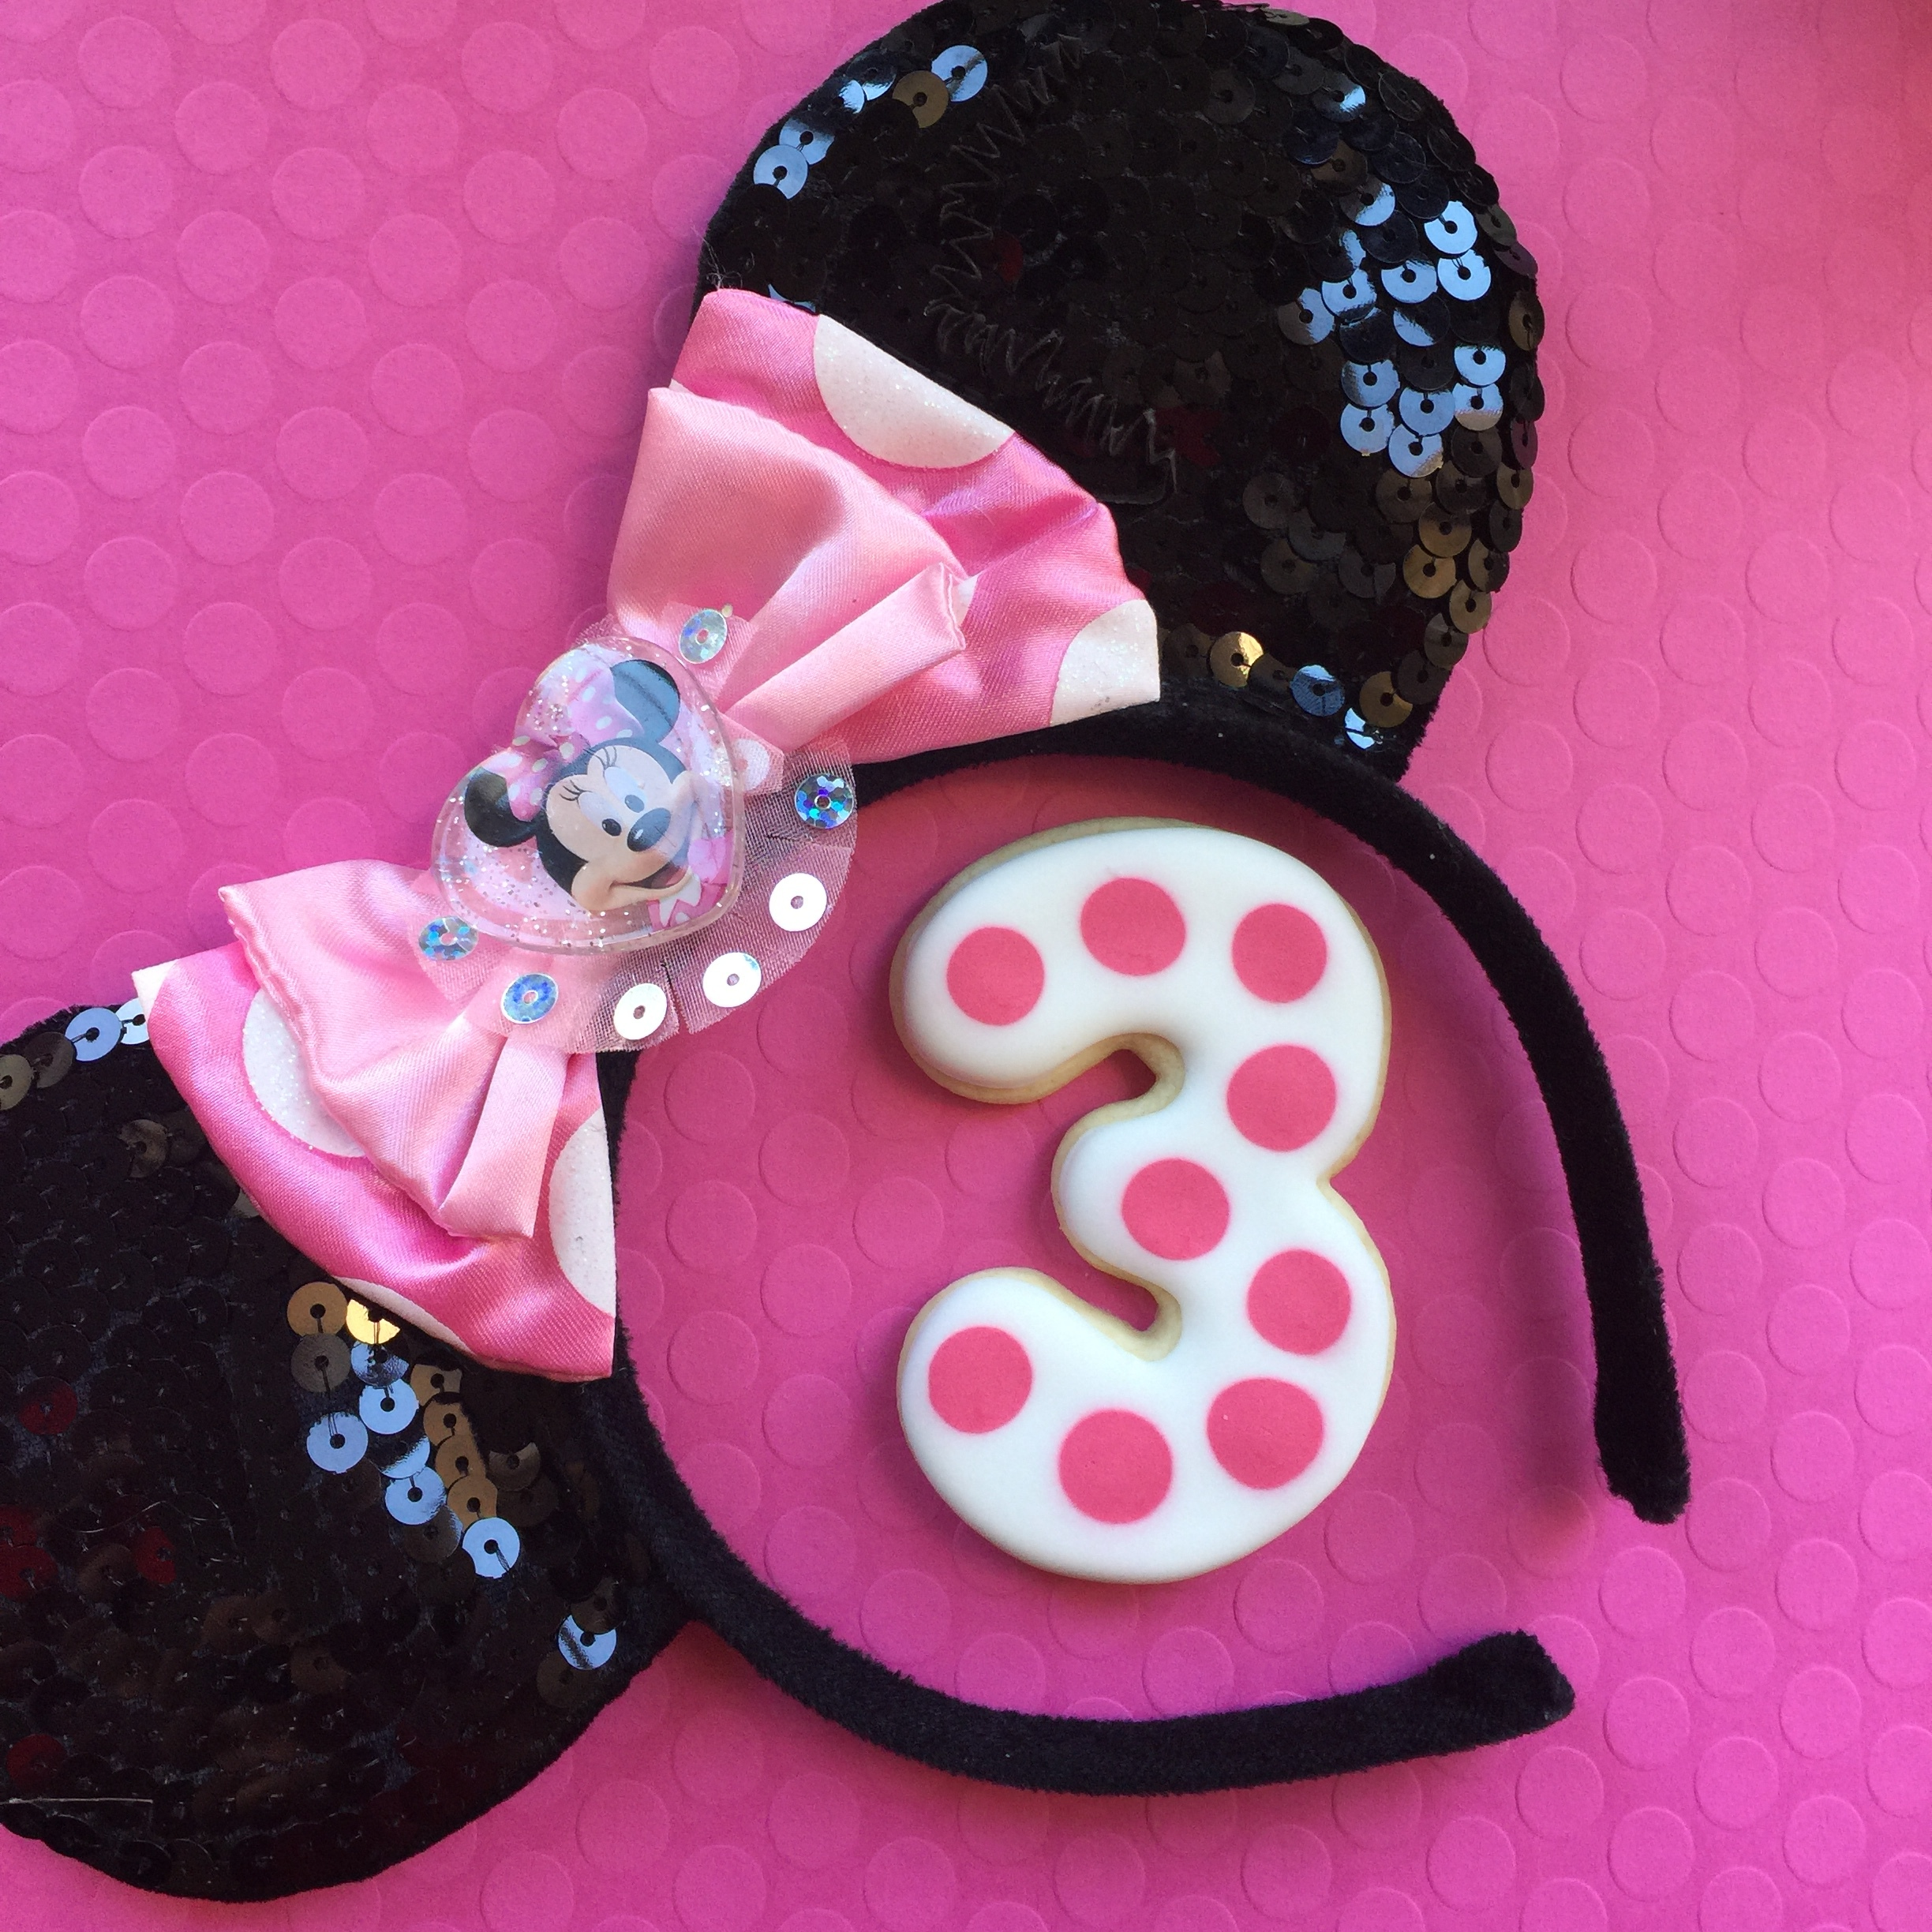 polka dot minnie cookies.JPG